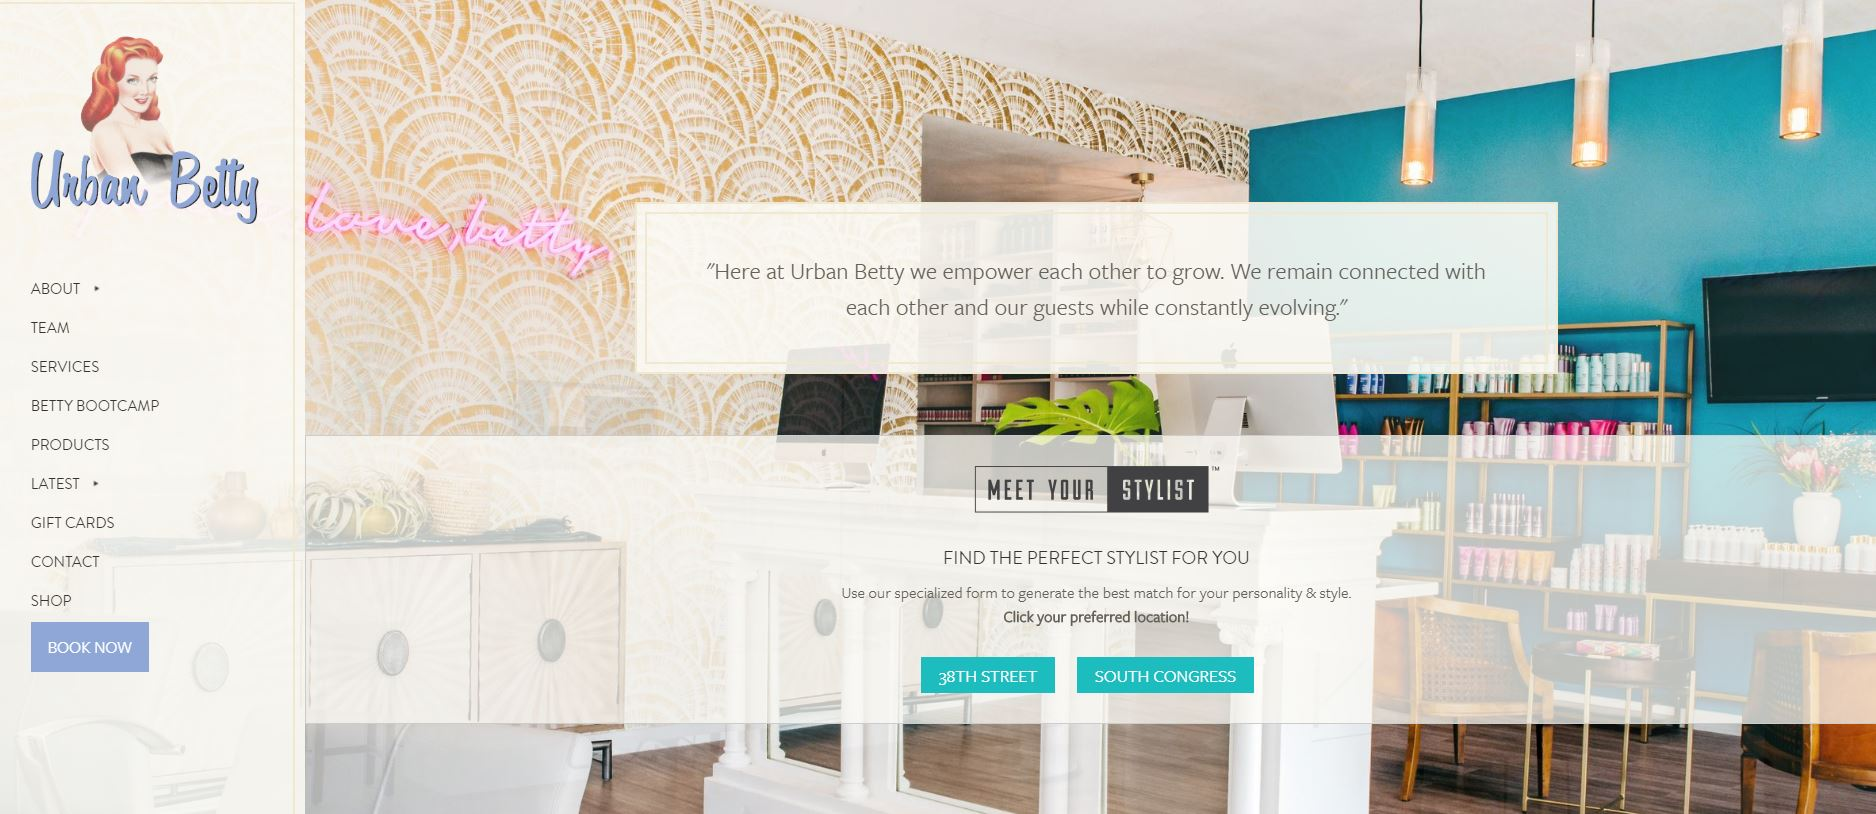 STAMP 2019: Urban Betty's New Website Drives In New Clients